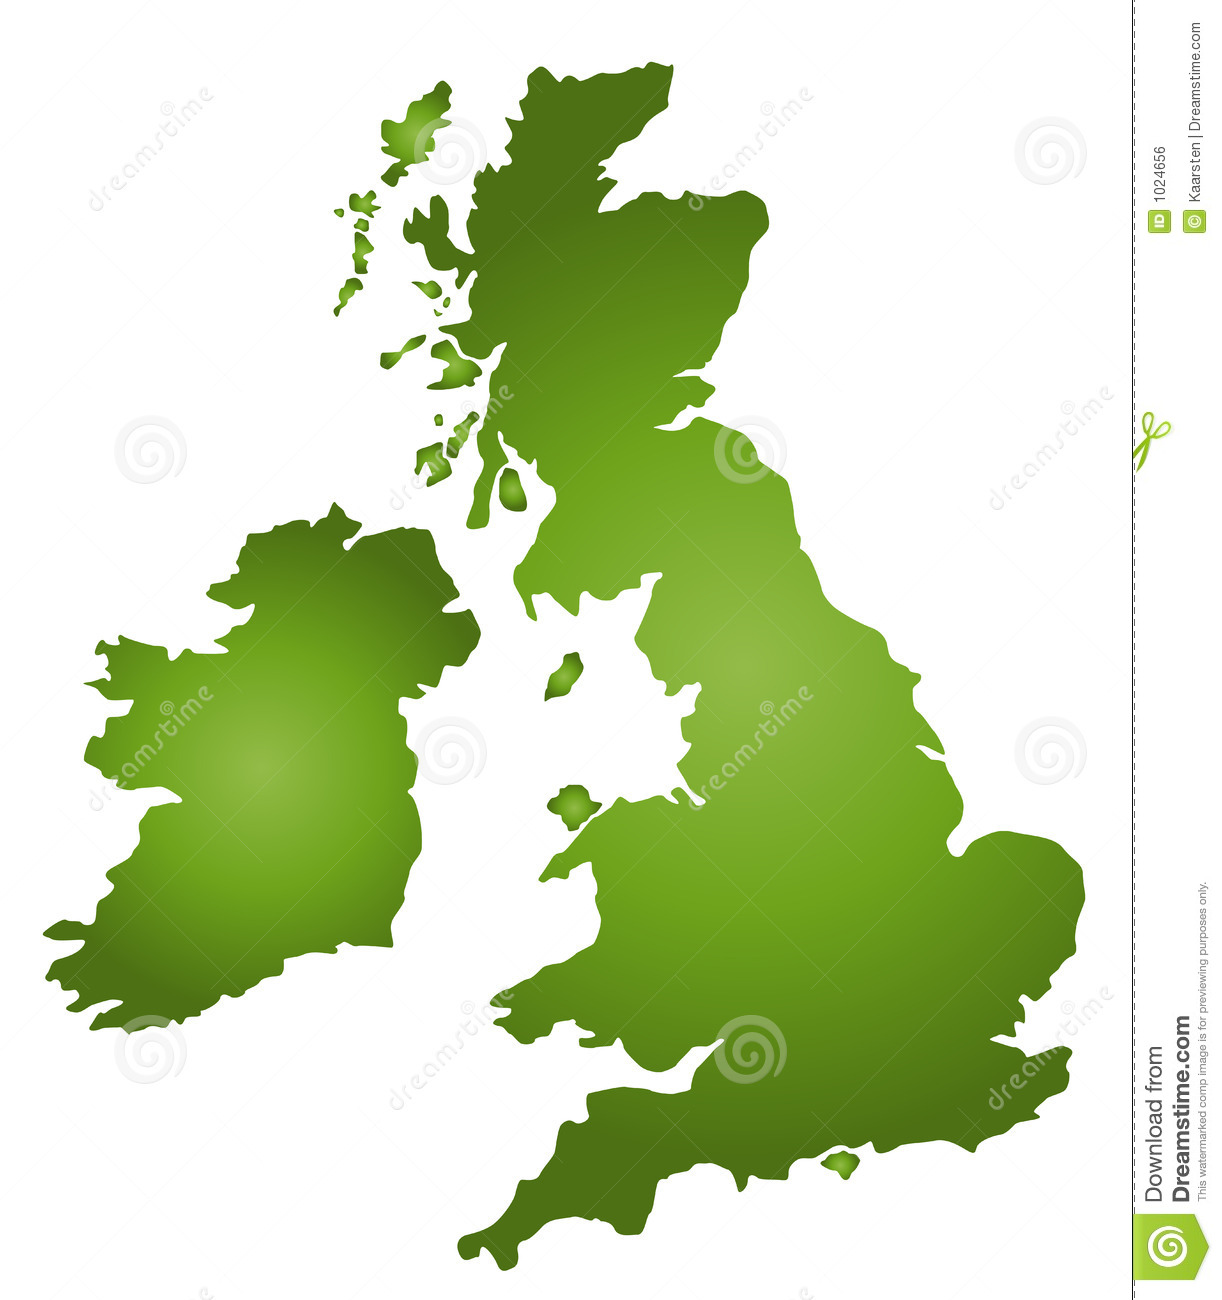 United Kingdom clipart #10, Download drawings